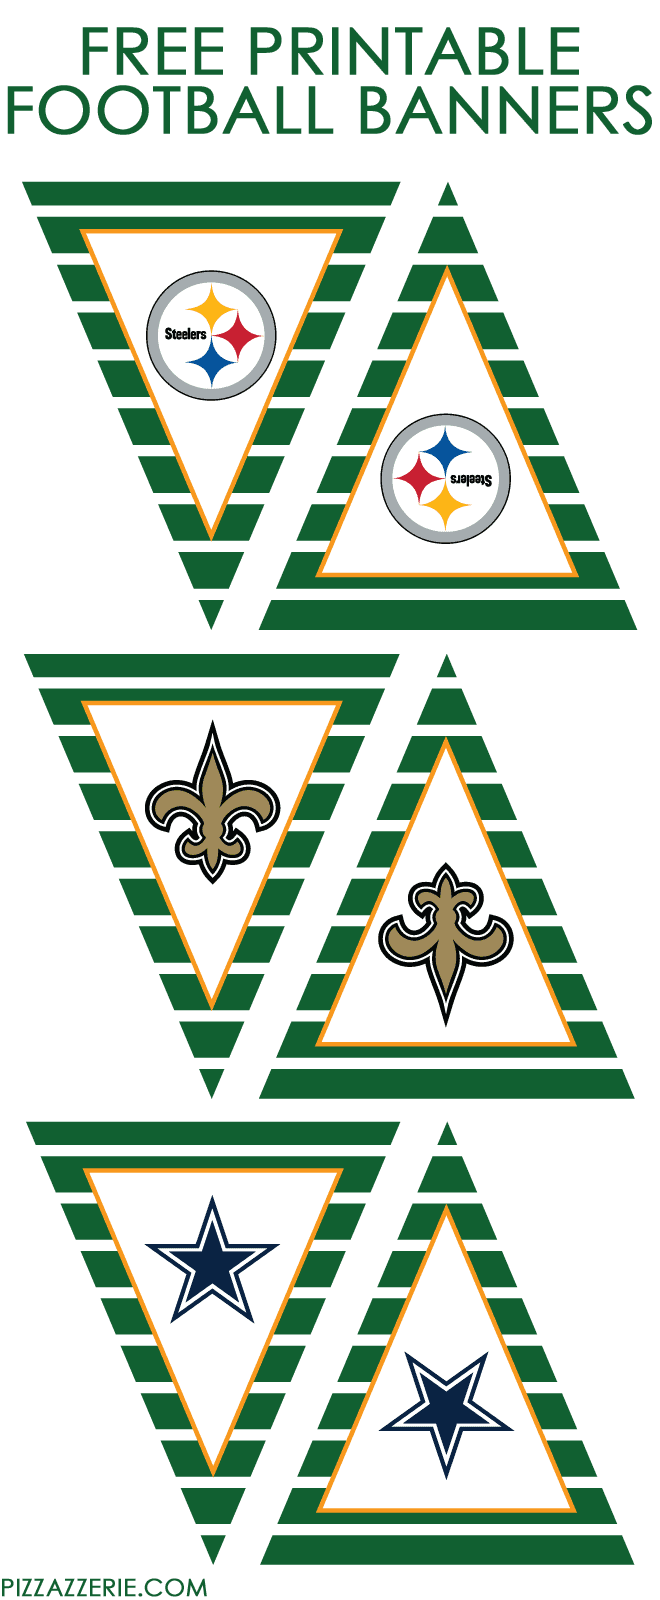 ALL NFL TEAMS | Free Printable Banners from Pizzazzerie.com